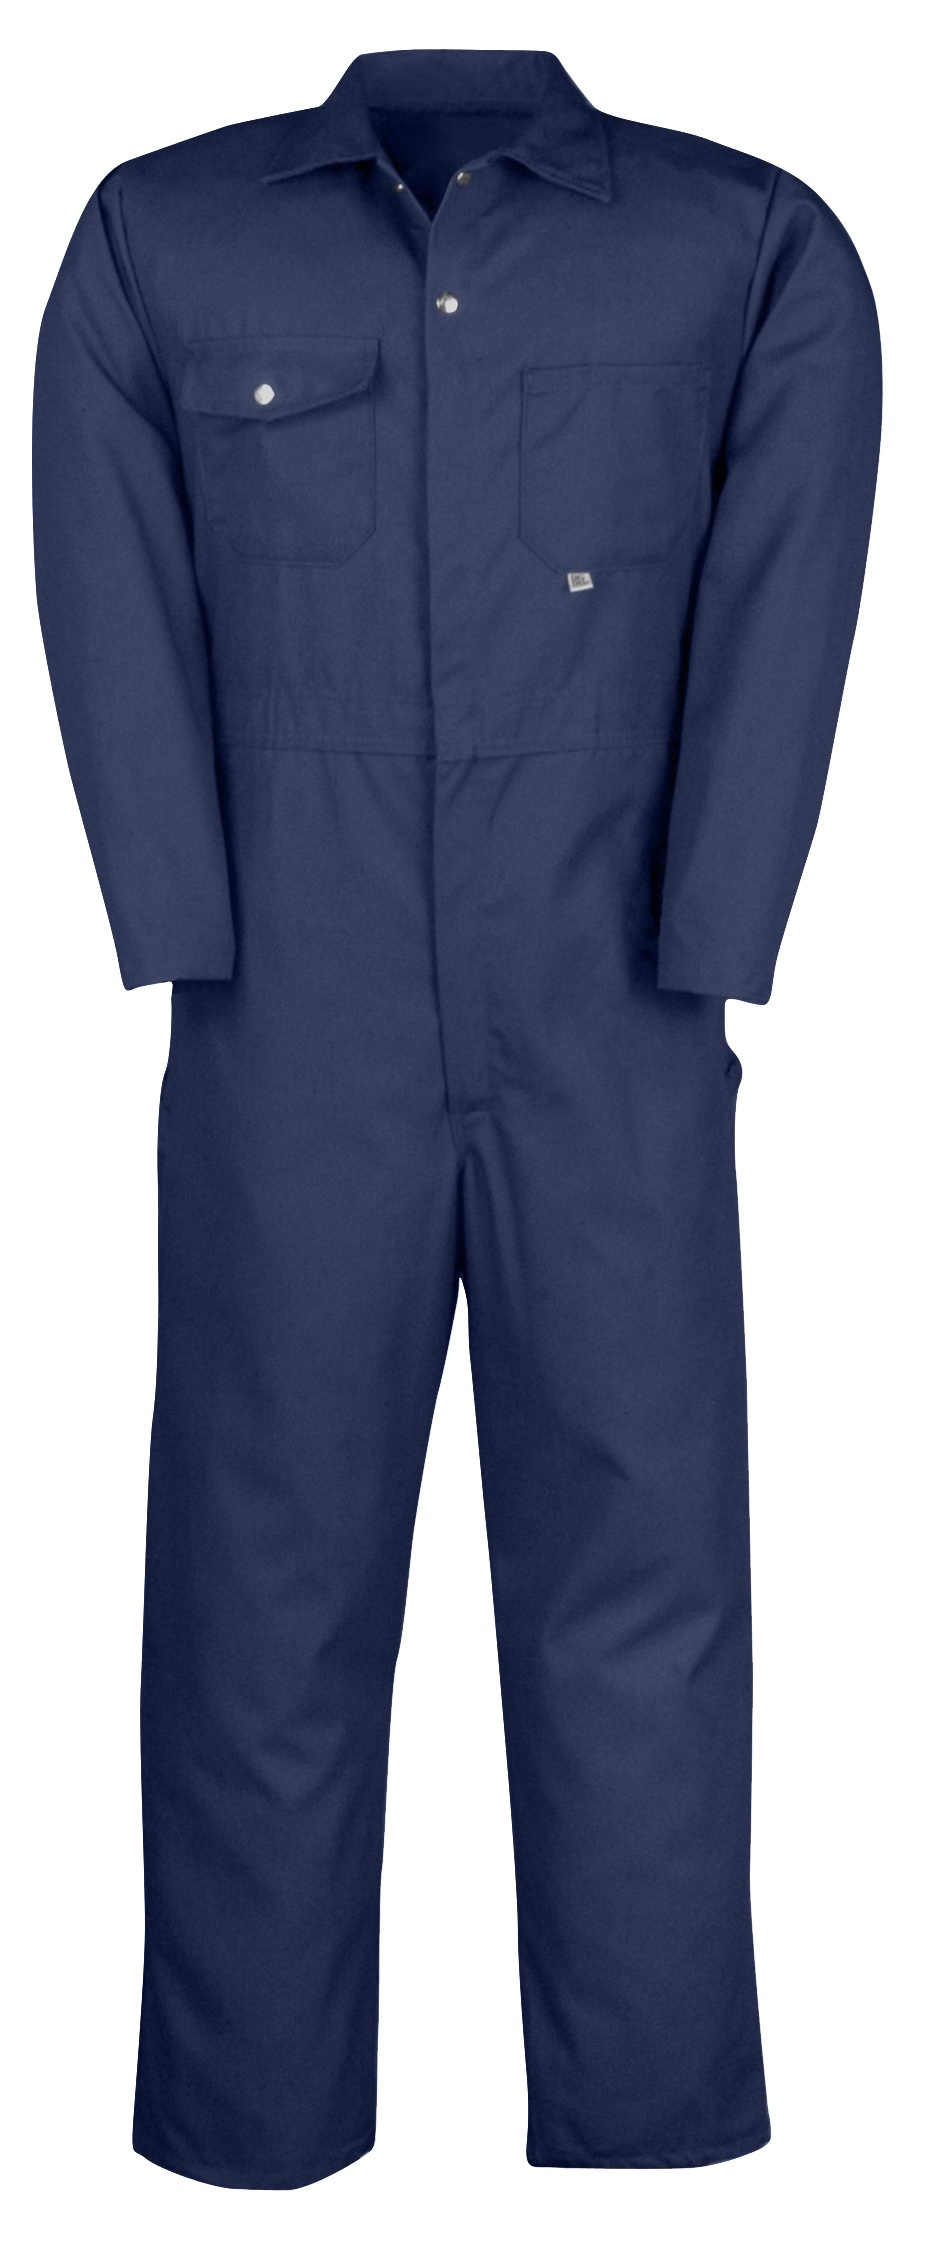 7.5 oz Twill Deluxe Coverall